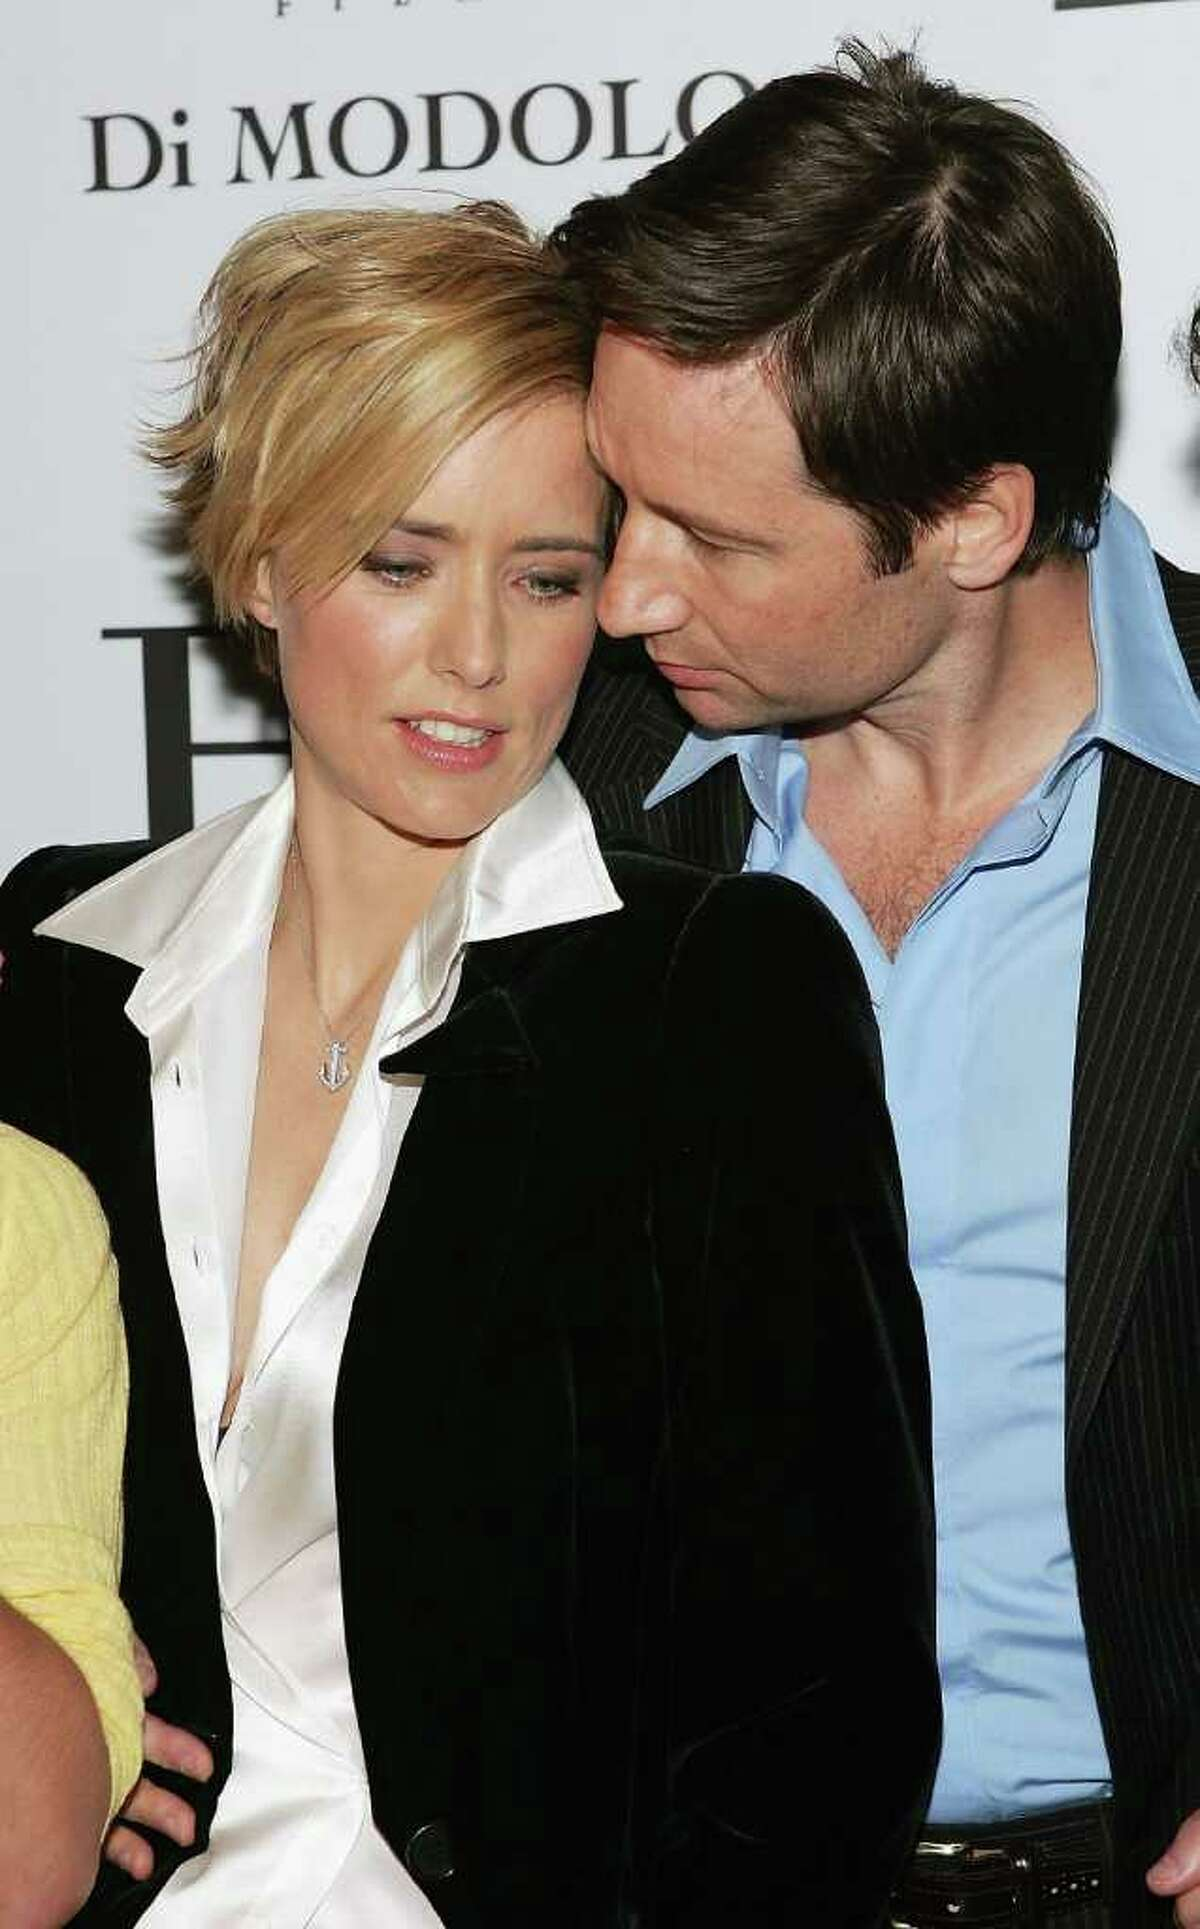 """Actors Tea Leoni and David Duchovny have reportedly split for a second time according to various online reports. Here is the story at Entertainment Tonight: Tea Leoni, David Duchovny split Director/actor David Duchovny and wife actress Tea Leoni attend the """"House Of D"""" film premiere at Loews Lincoln Square Theater April 10, 2005 in New York City. (Photo by Evan Agostini/Getty Images)"""